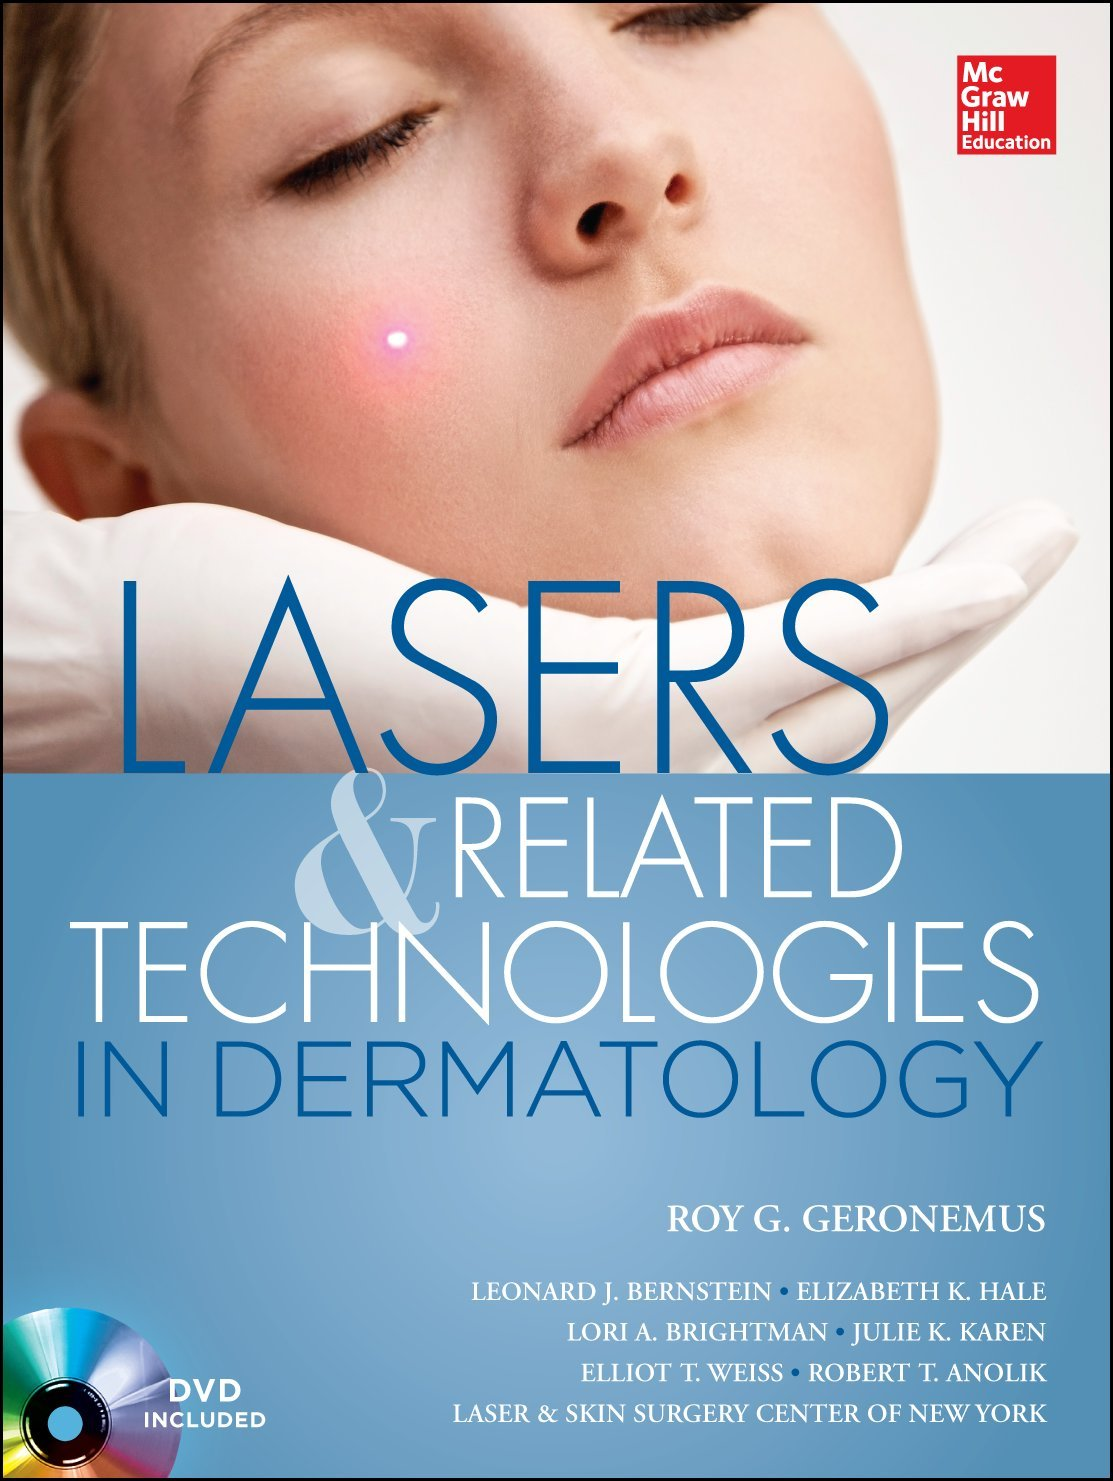 Lasers and Related Technologies in Dermatology Roy Geronemus